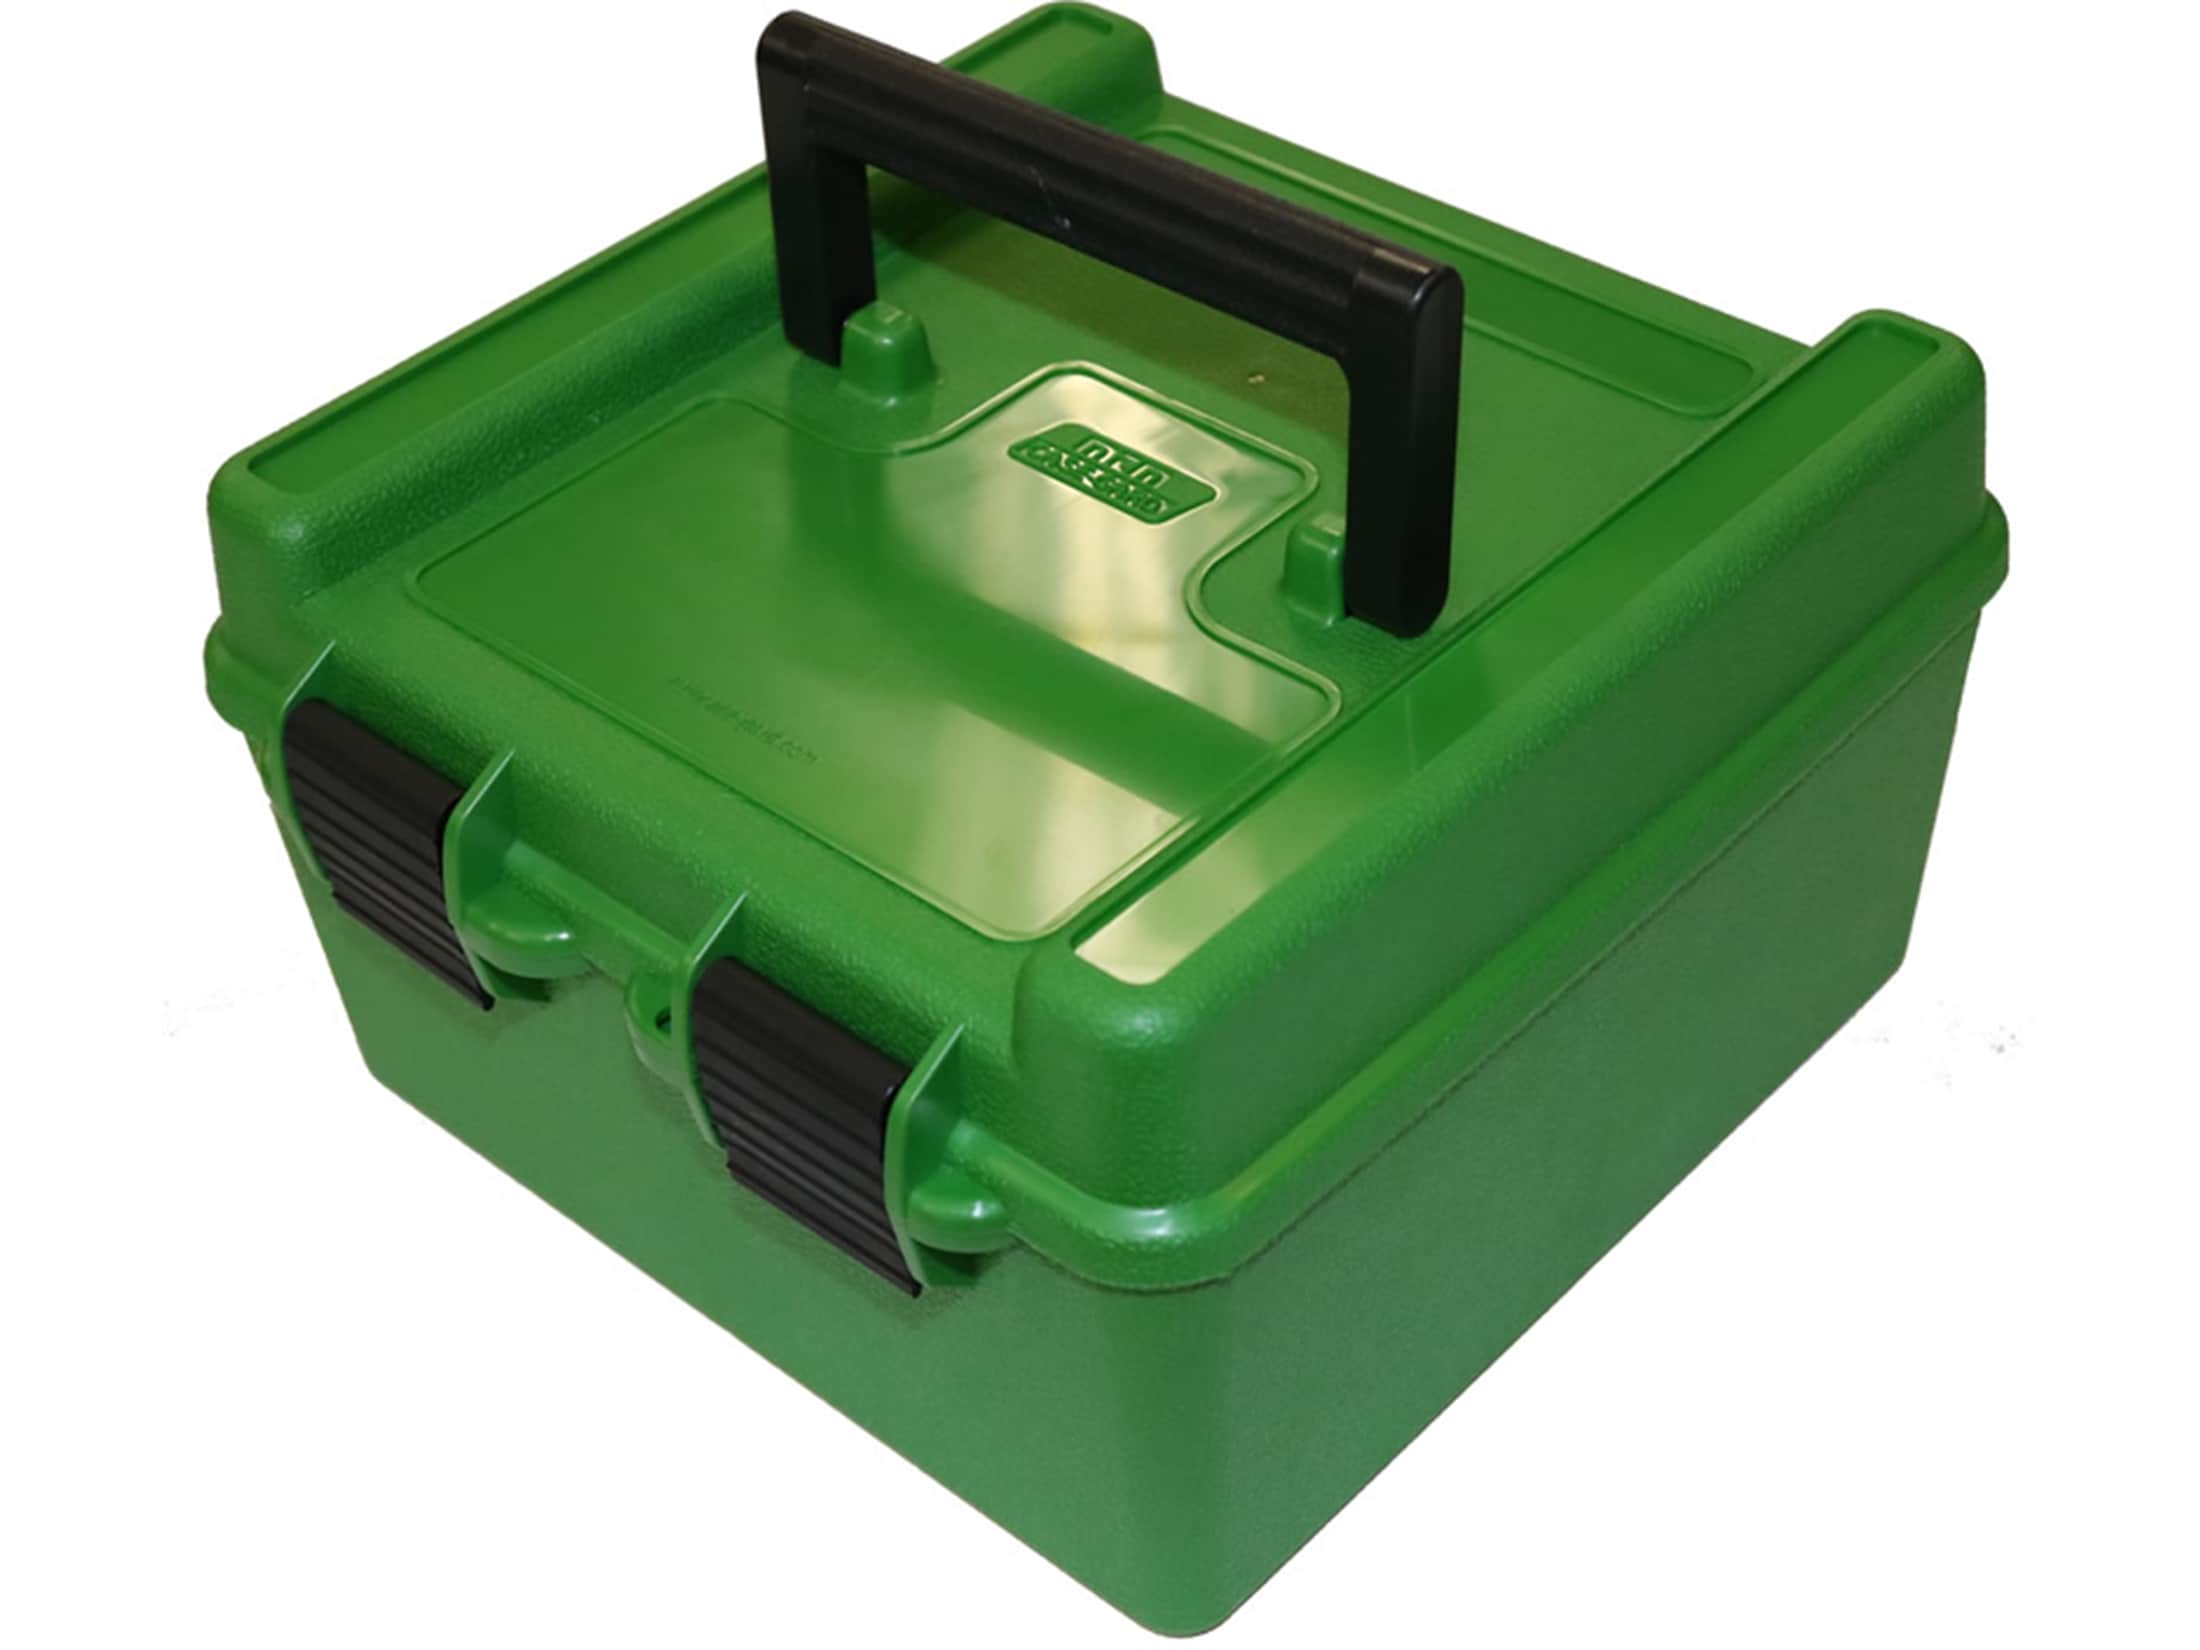 Ammo Boxes & Labels for Reloading Ammo | Great Prices & Selection